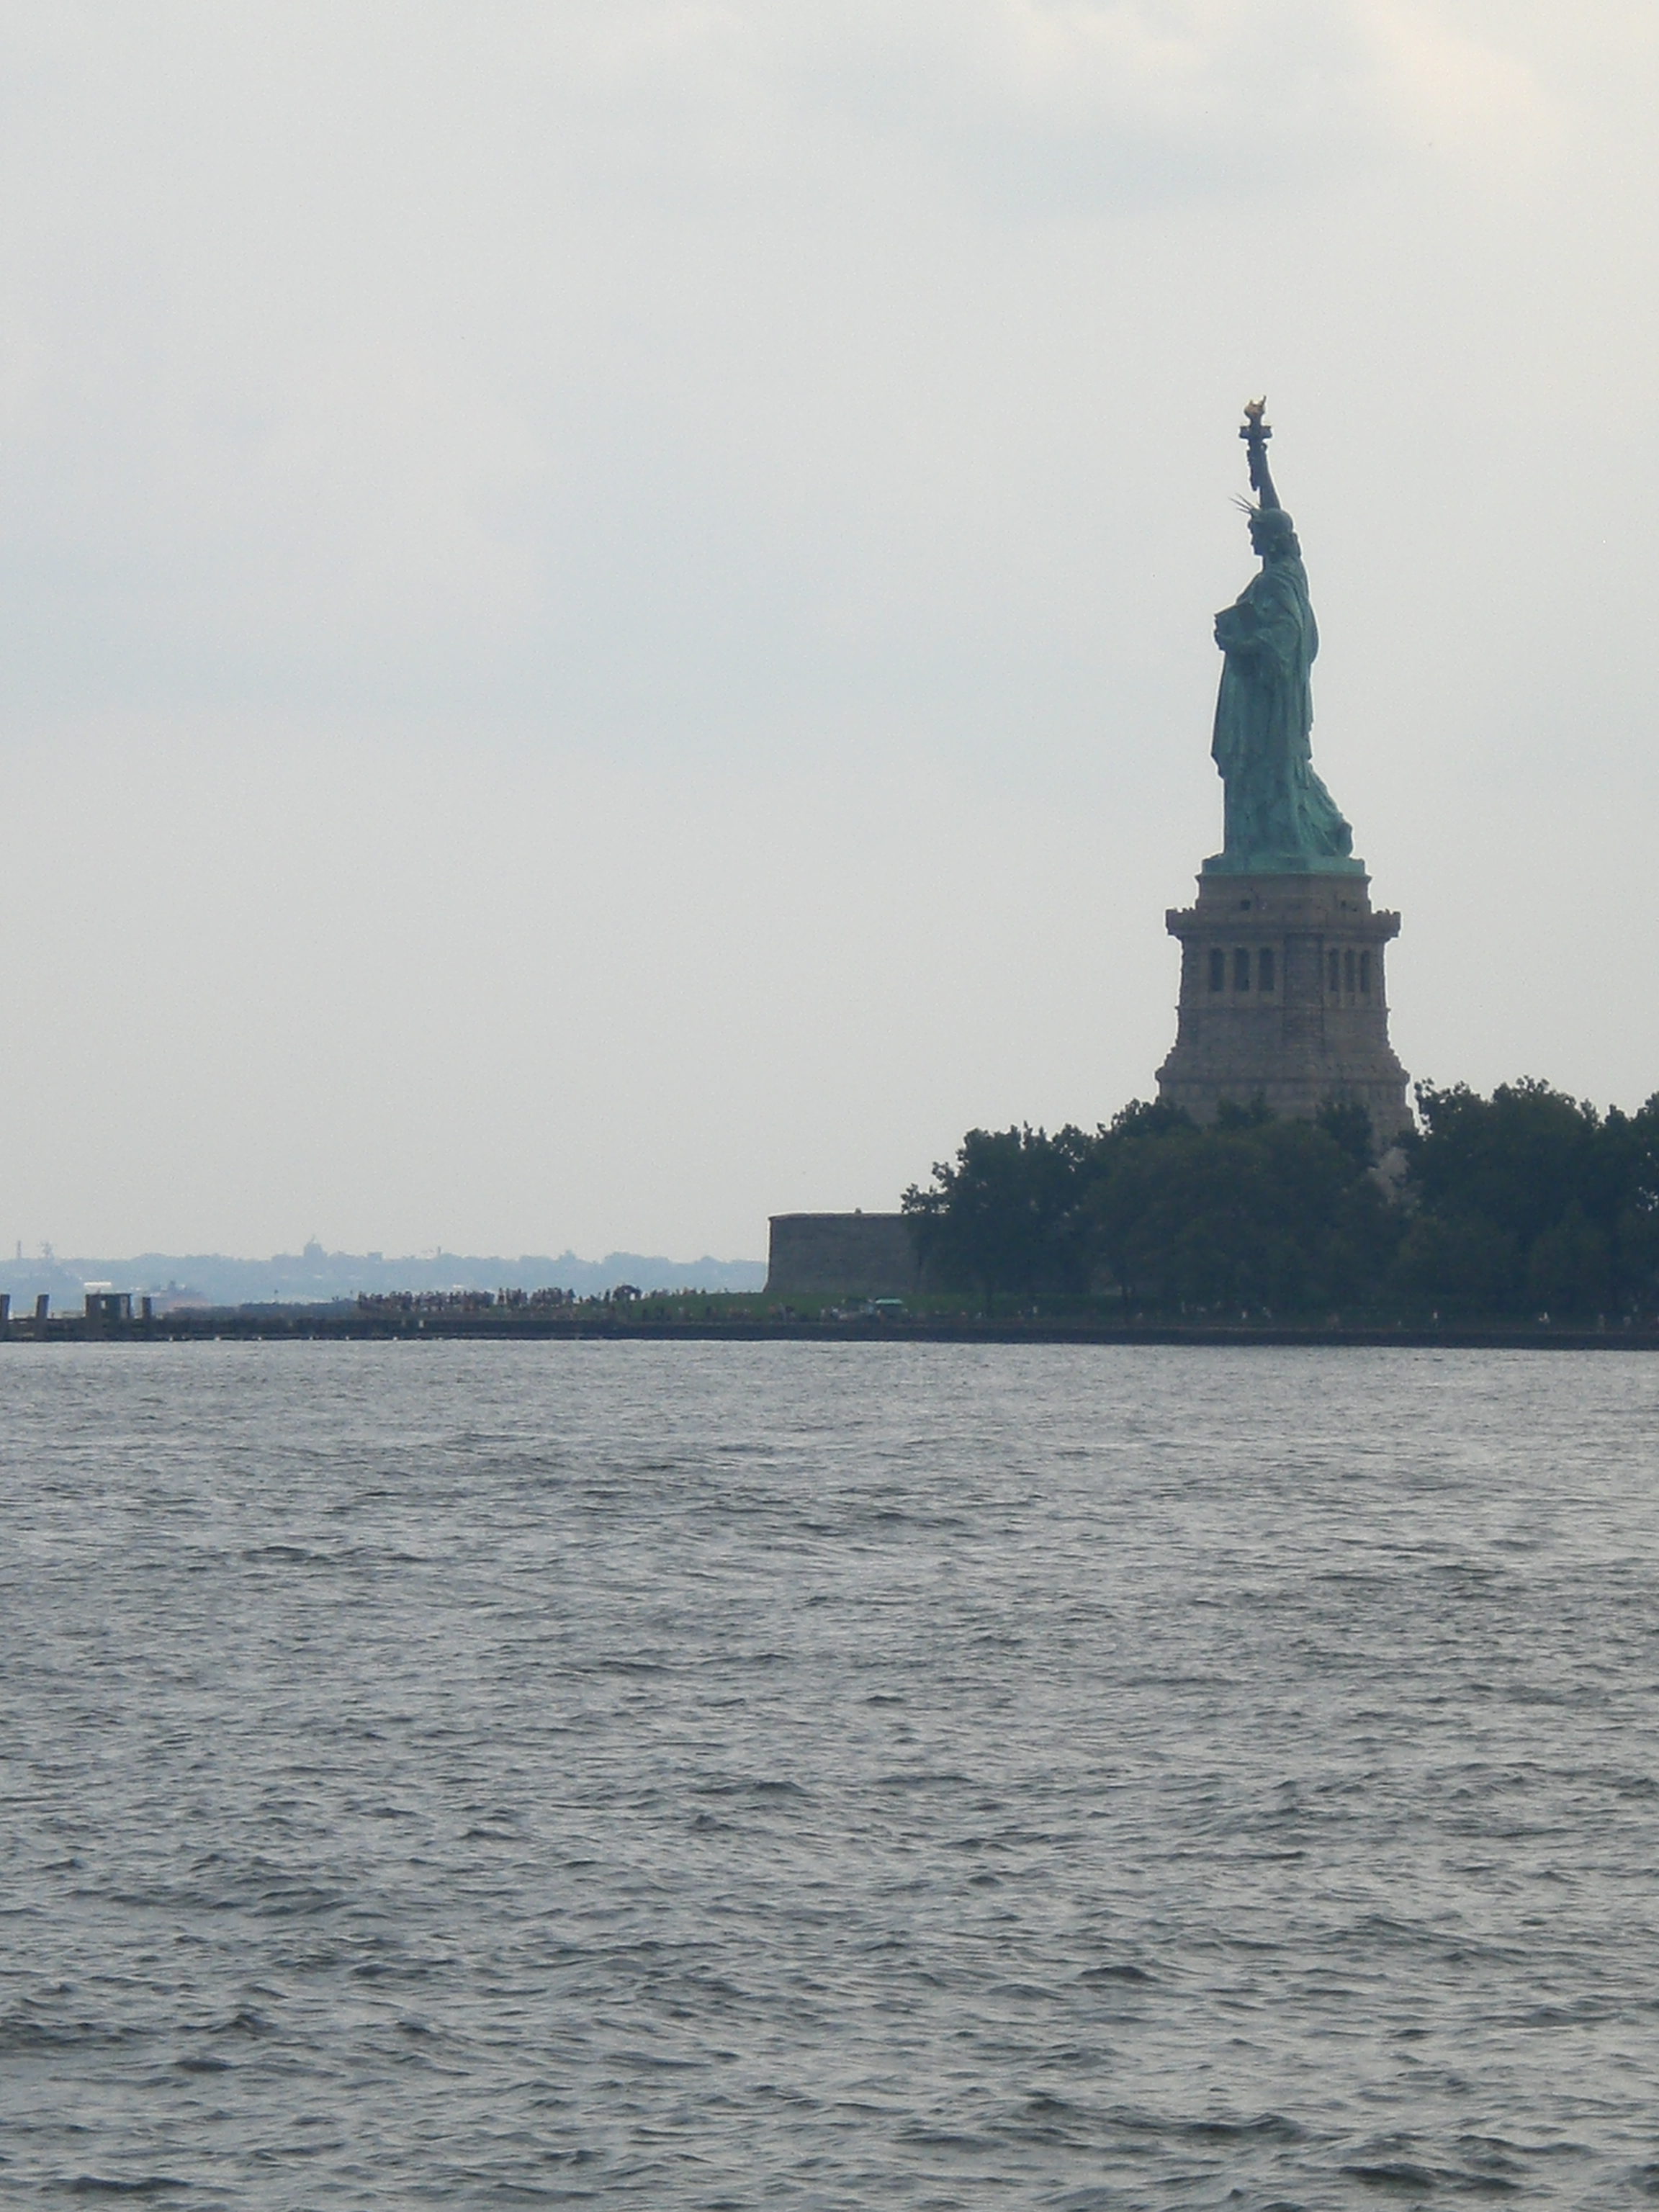 statue-of-liberty-ellis-island-2008-039